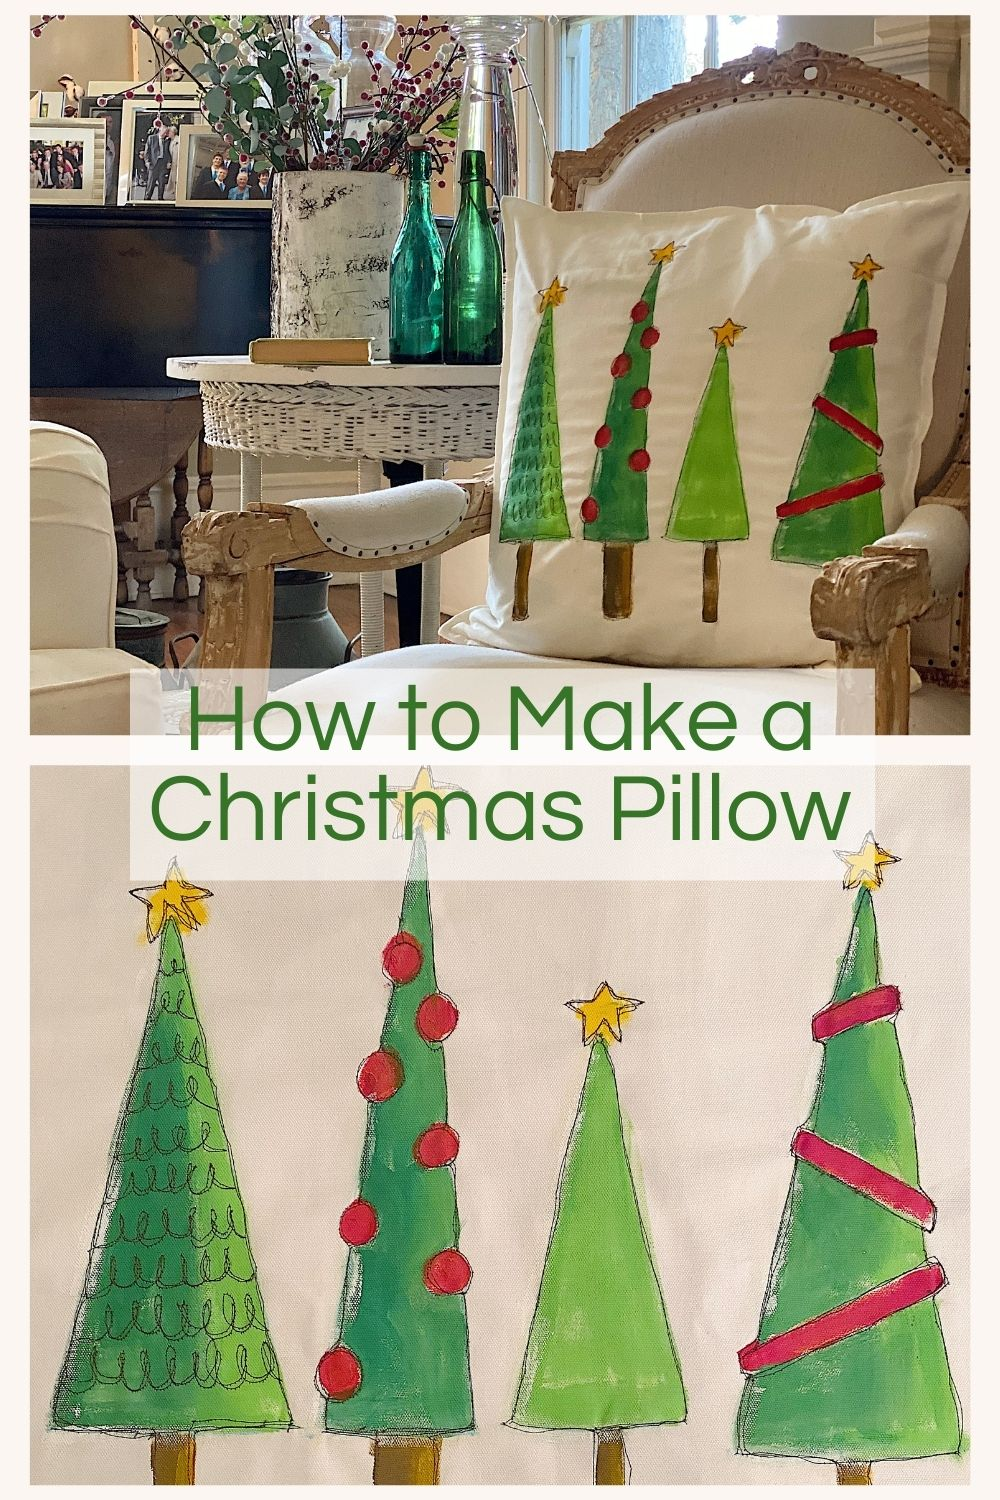 I am so excited to share a favorite Christmas craft DIY, my Christmas Tree Pillow. It's easy to make and looks store-bought.